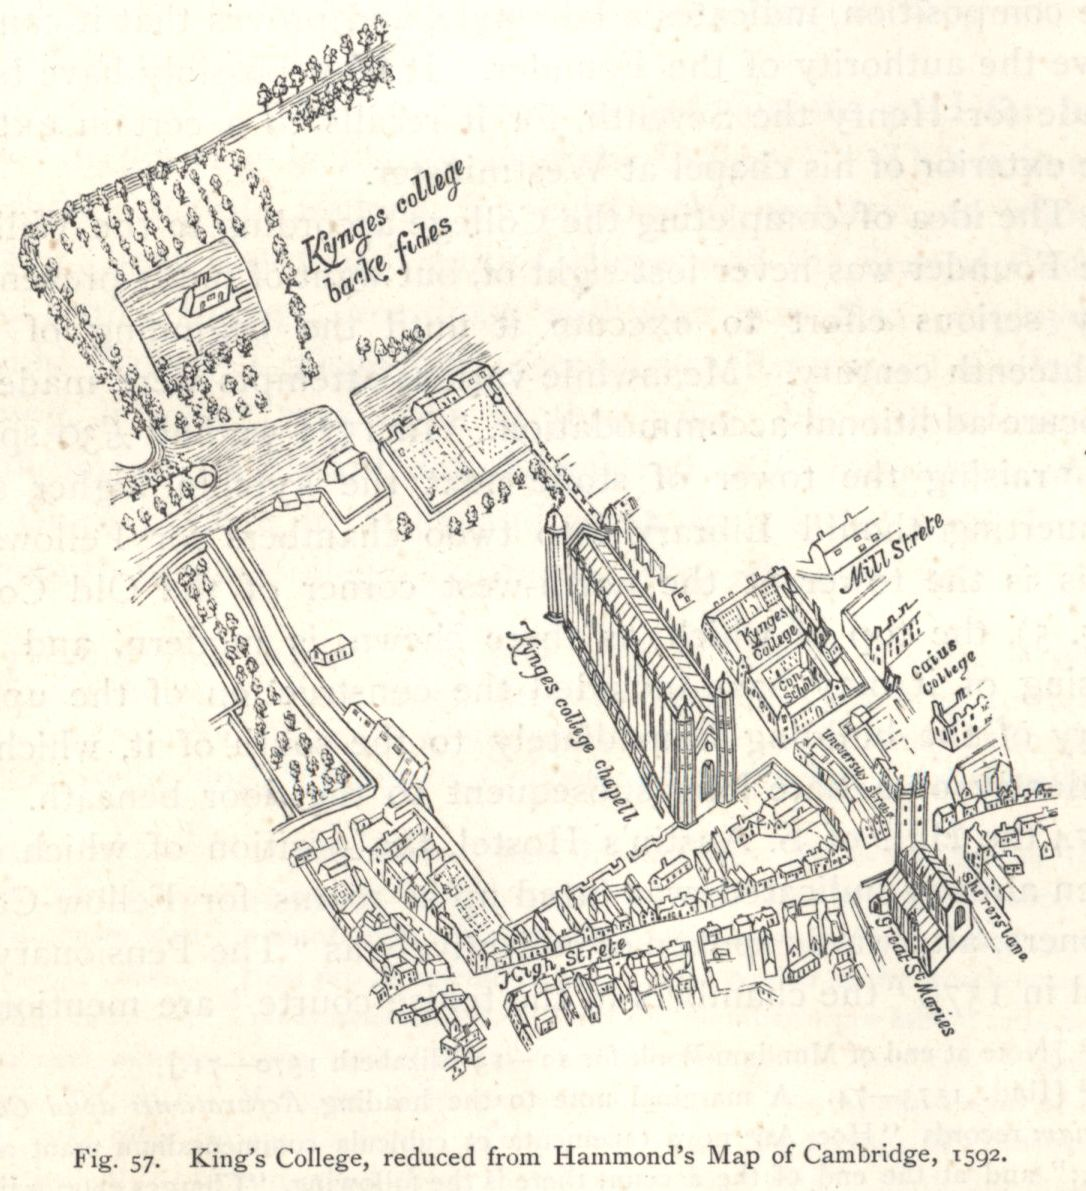 King's College, reduced from Hammond's Map of Cambridge, 1592. [Willis and Clark, vol. 1, p. 553, fig. 57]